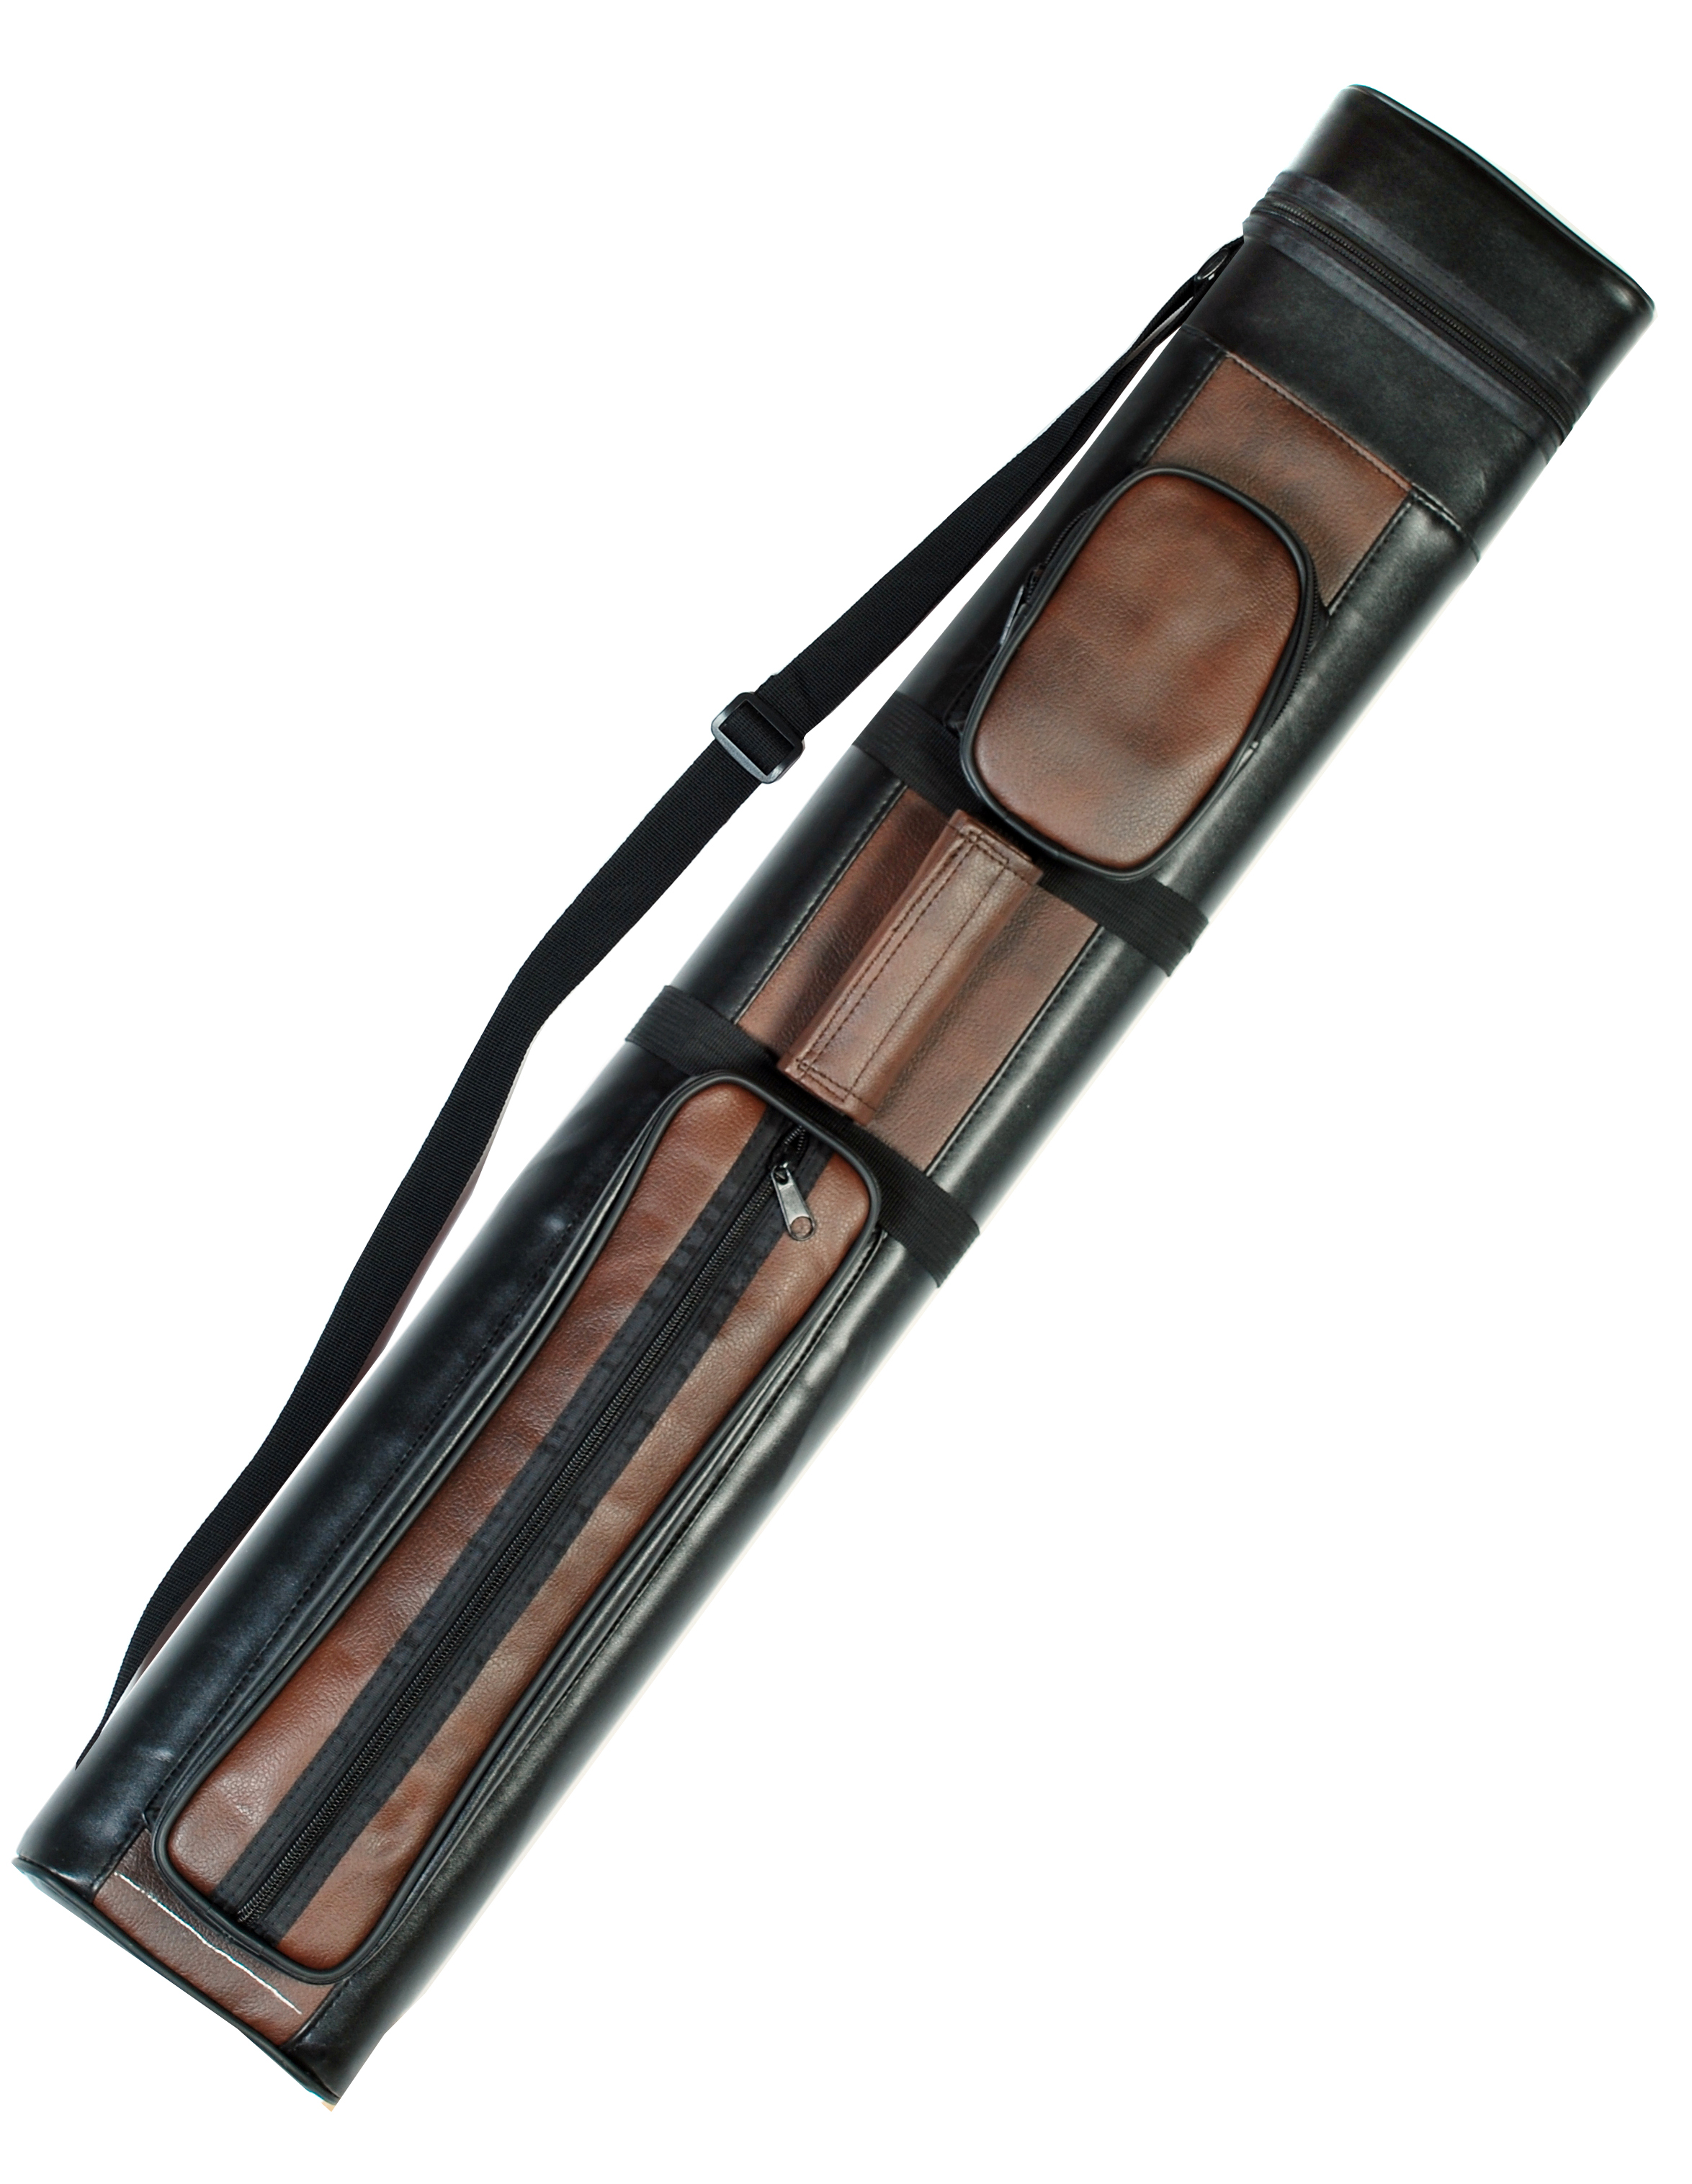 2X2 Hard Billiard Stick Pool Cue Carrying Case 2 x 2 Brown Black by Iszy Billiards